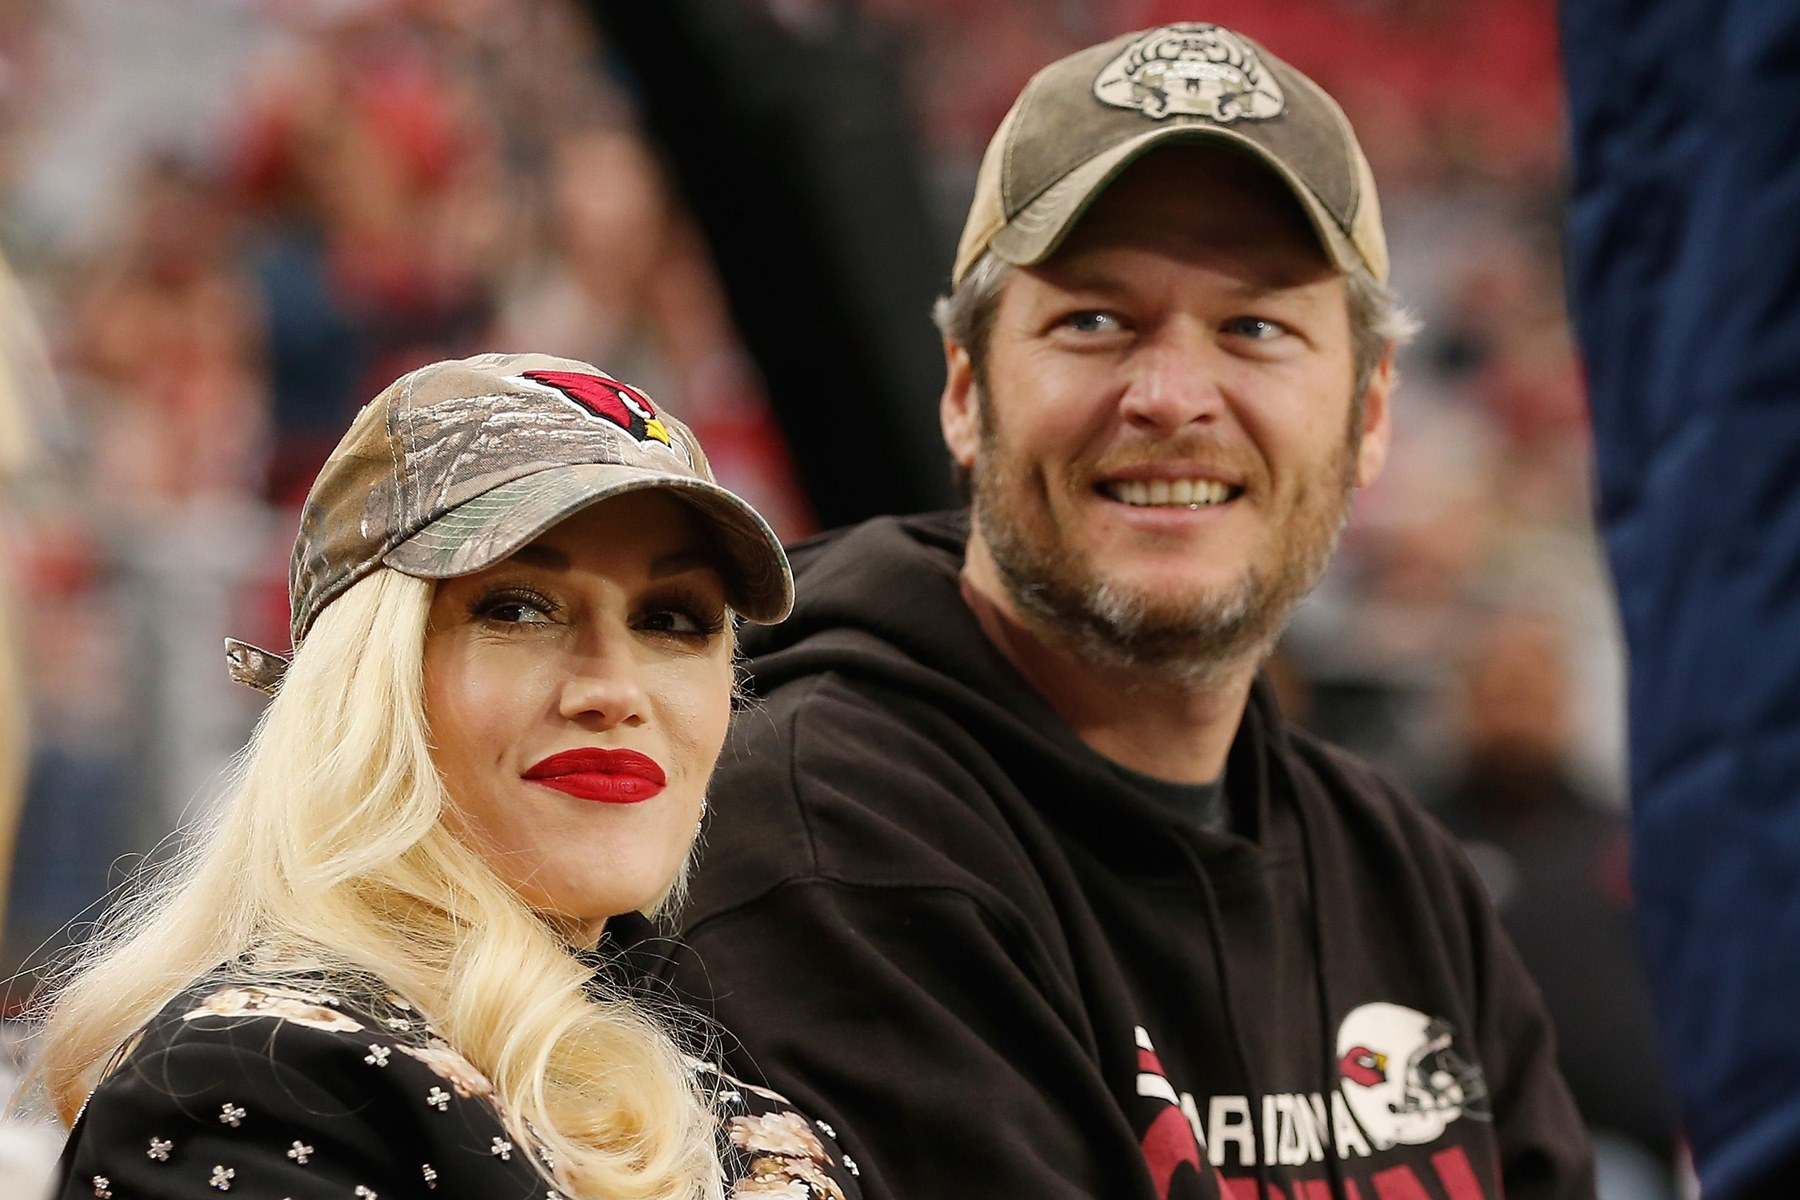 Blake Shelton, Gwen Stefani Duet From Home on ACM Special Preview